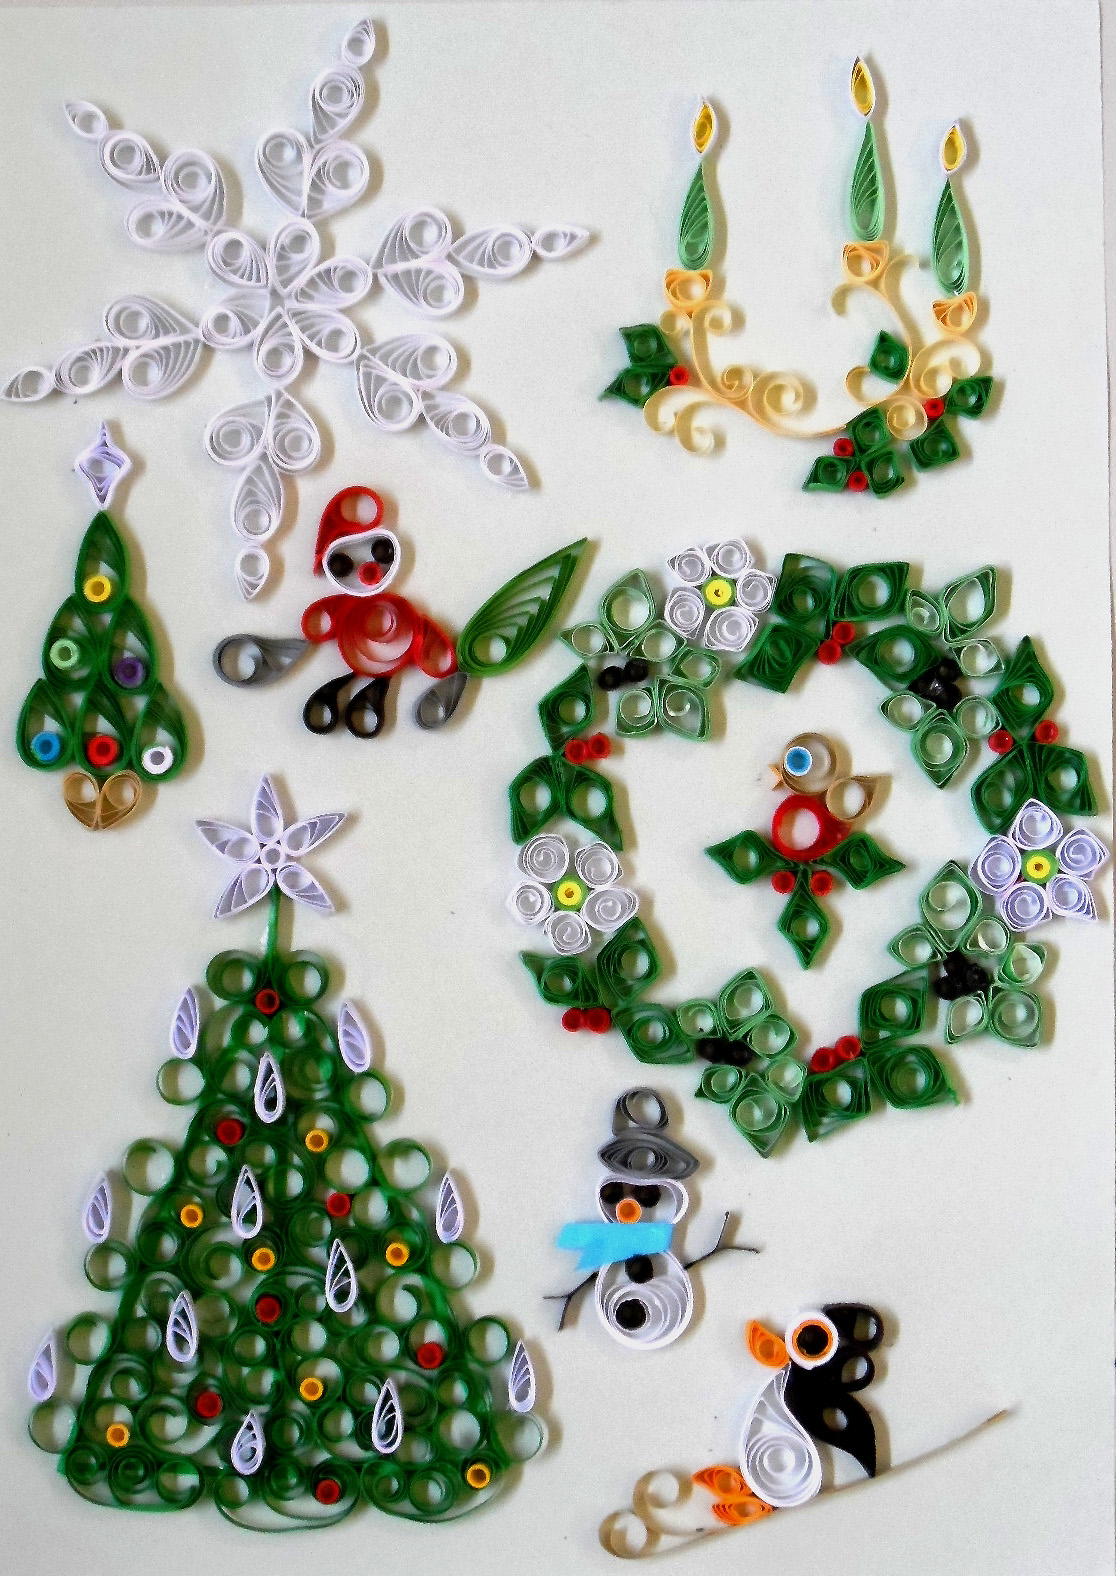 Quilling Kit - Designs at Christmas 2